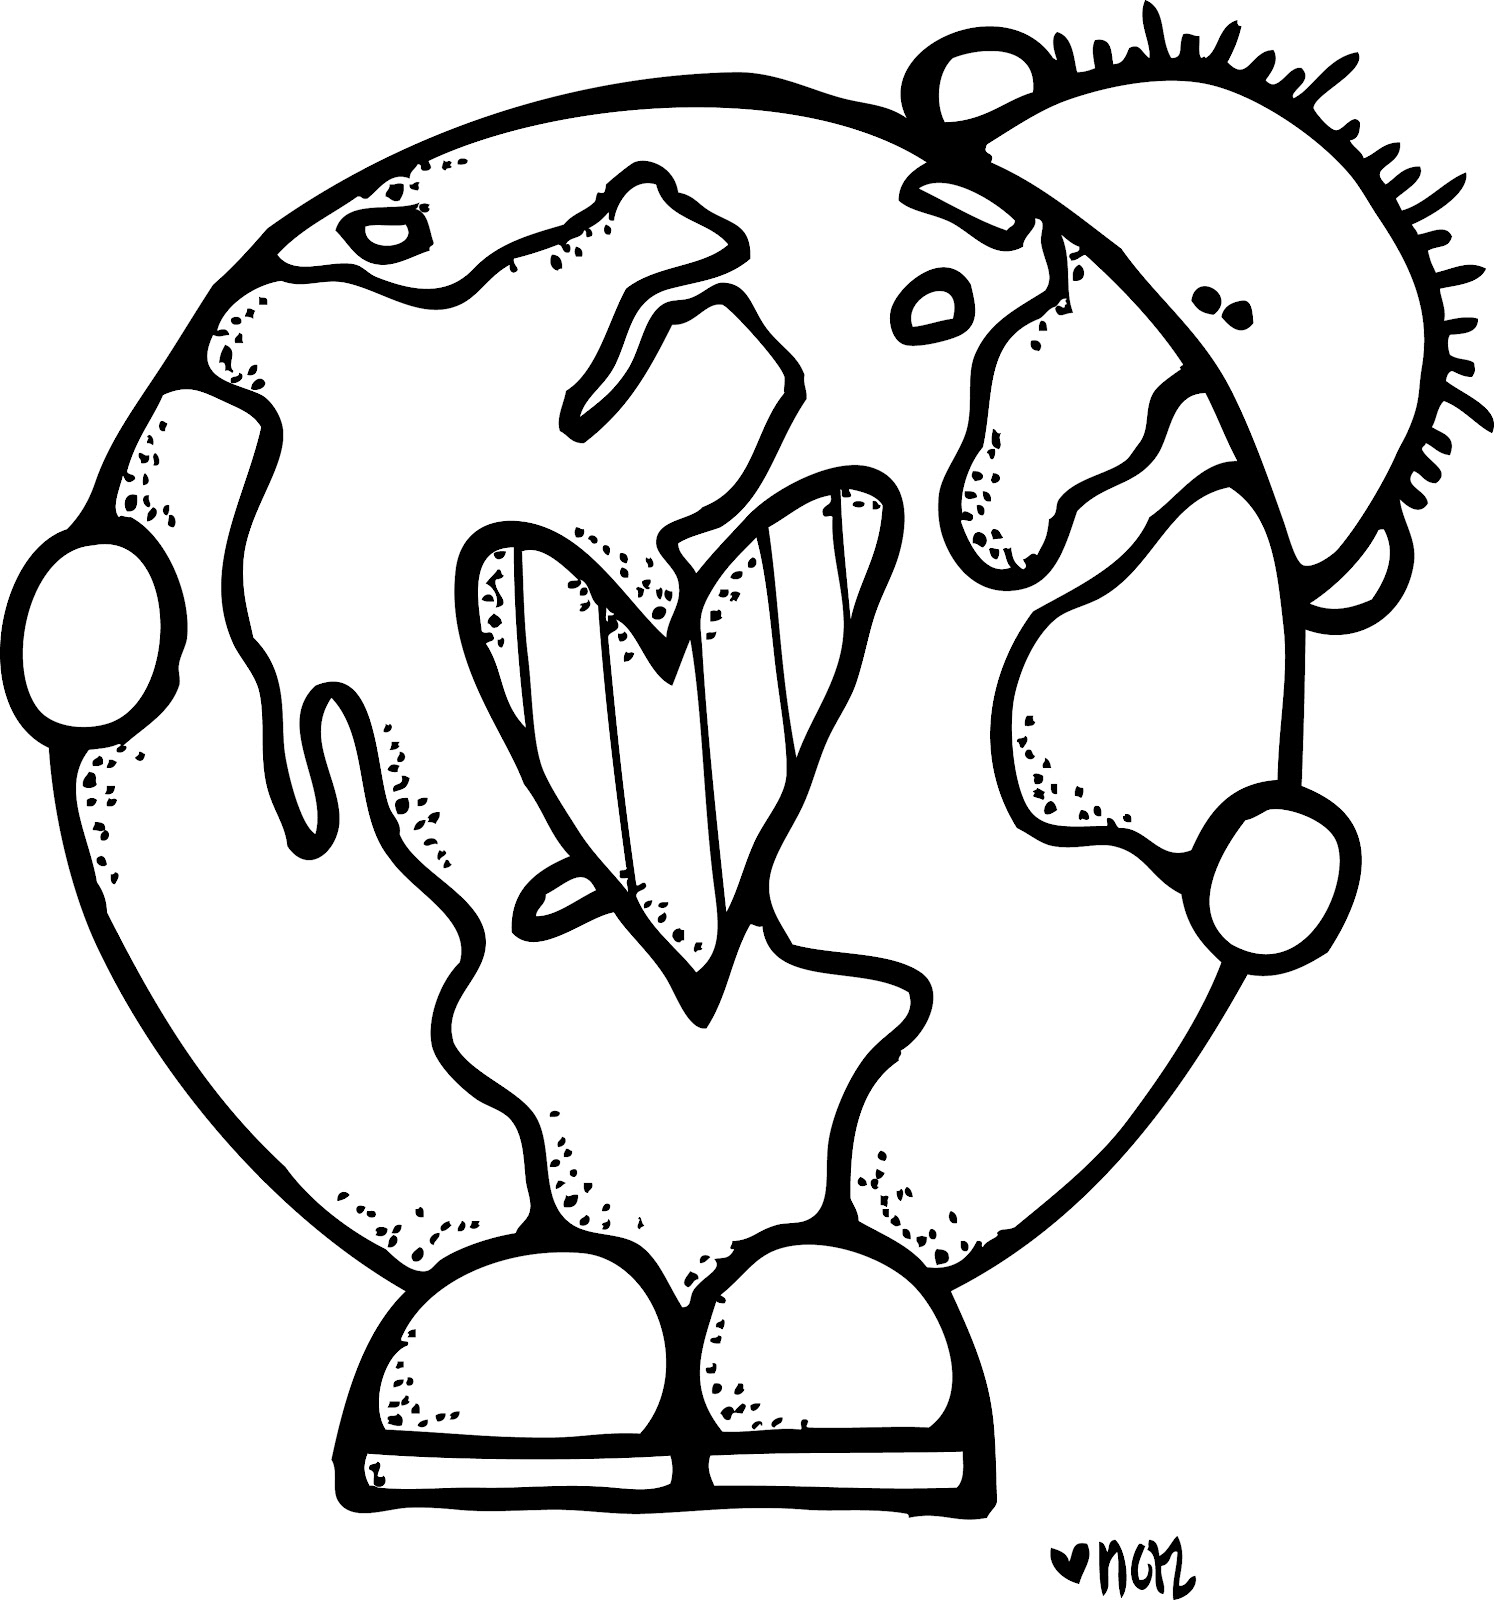 April earth day clipart black and white jpg freeuse download April earth day clipart black and white - ClipartFest jpg freeuse download